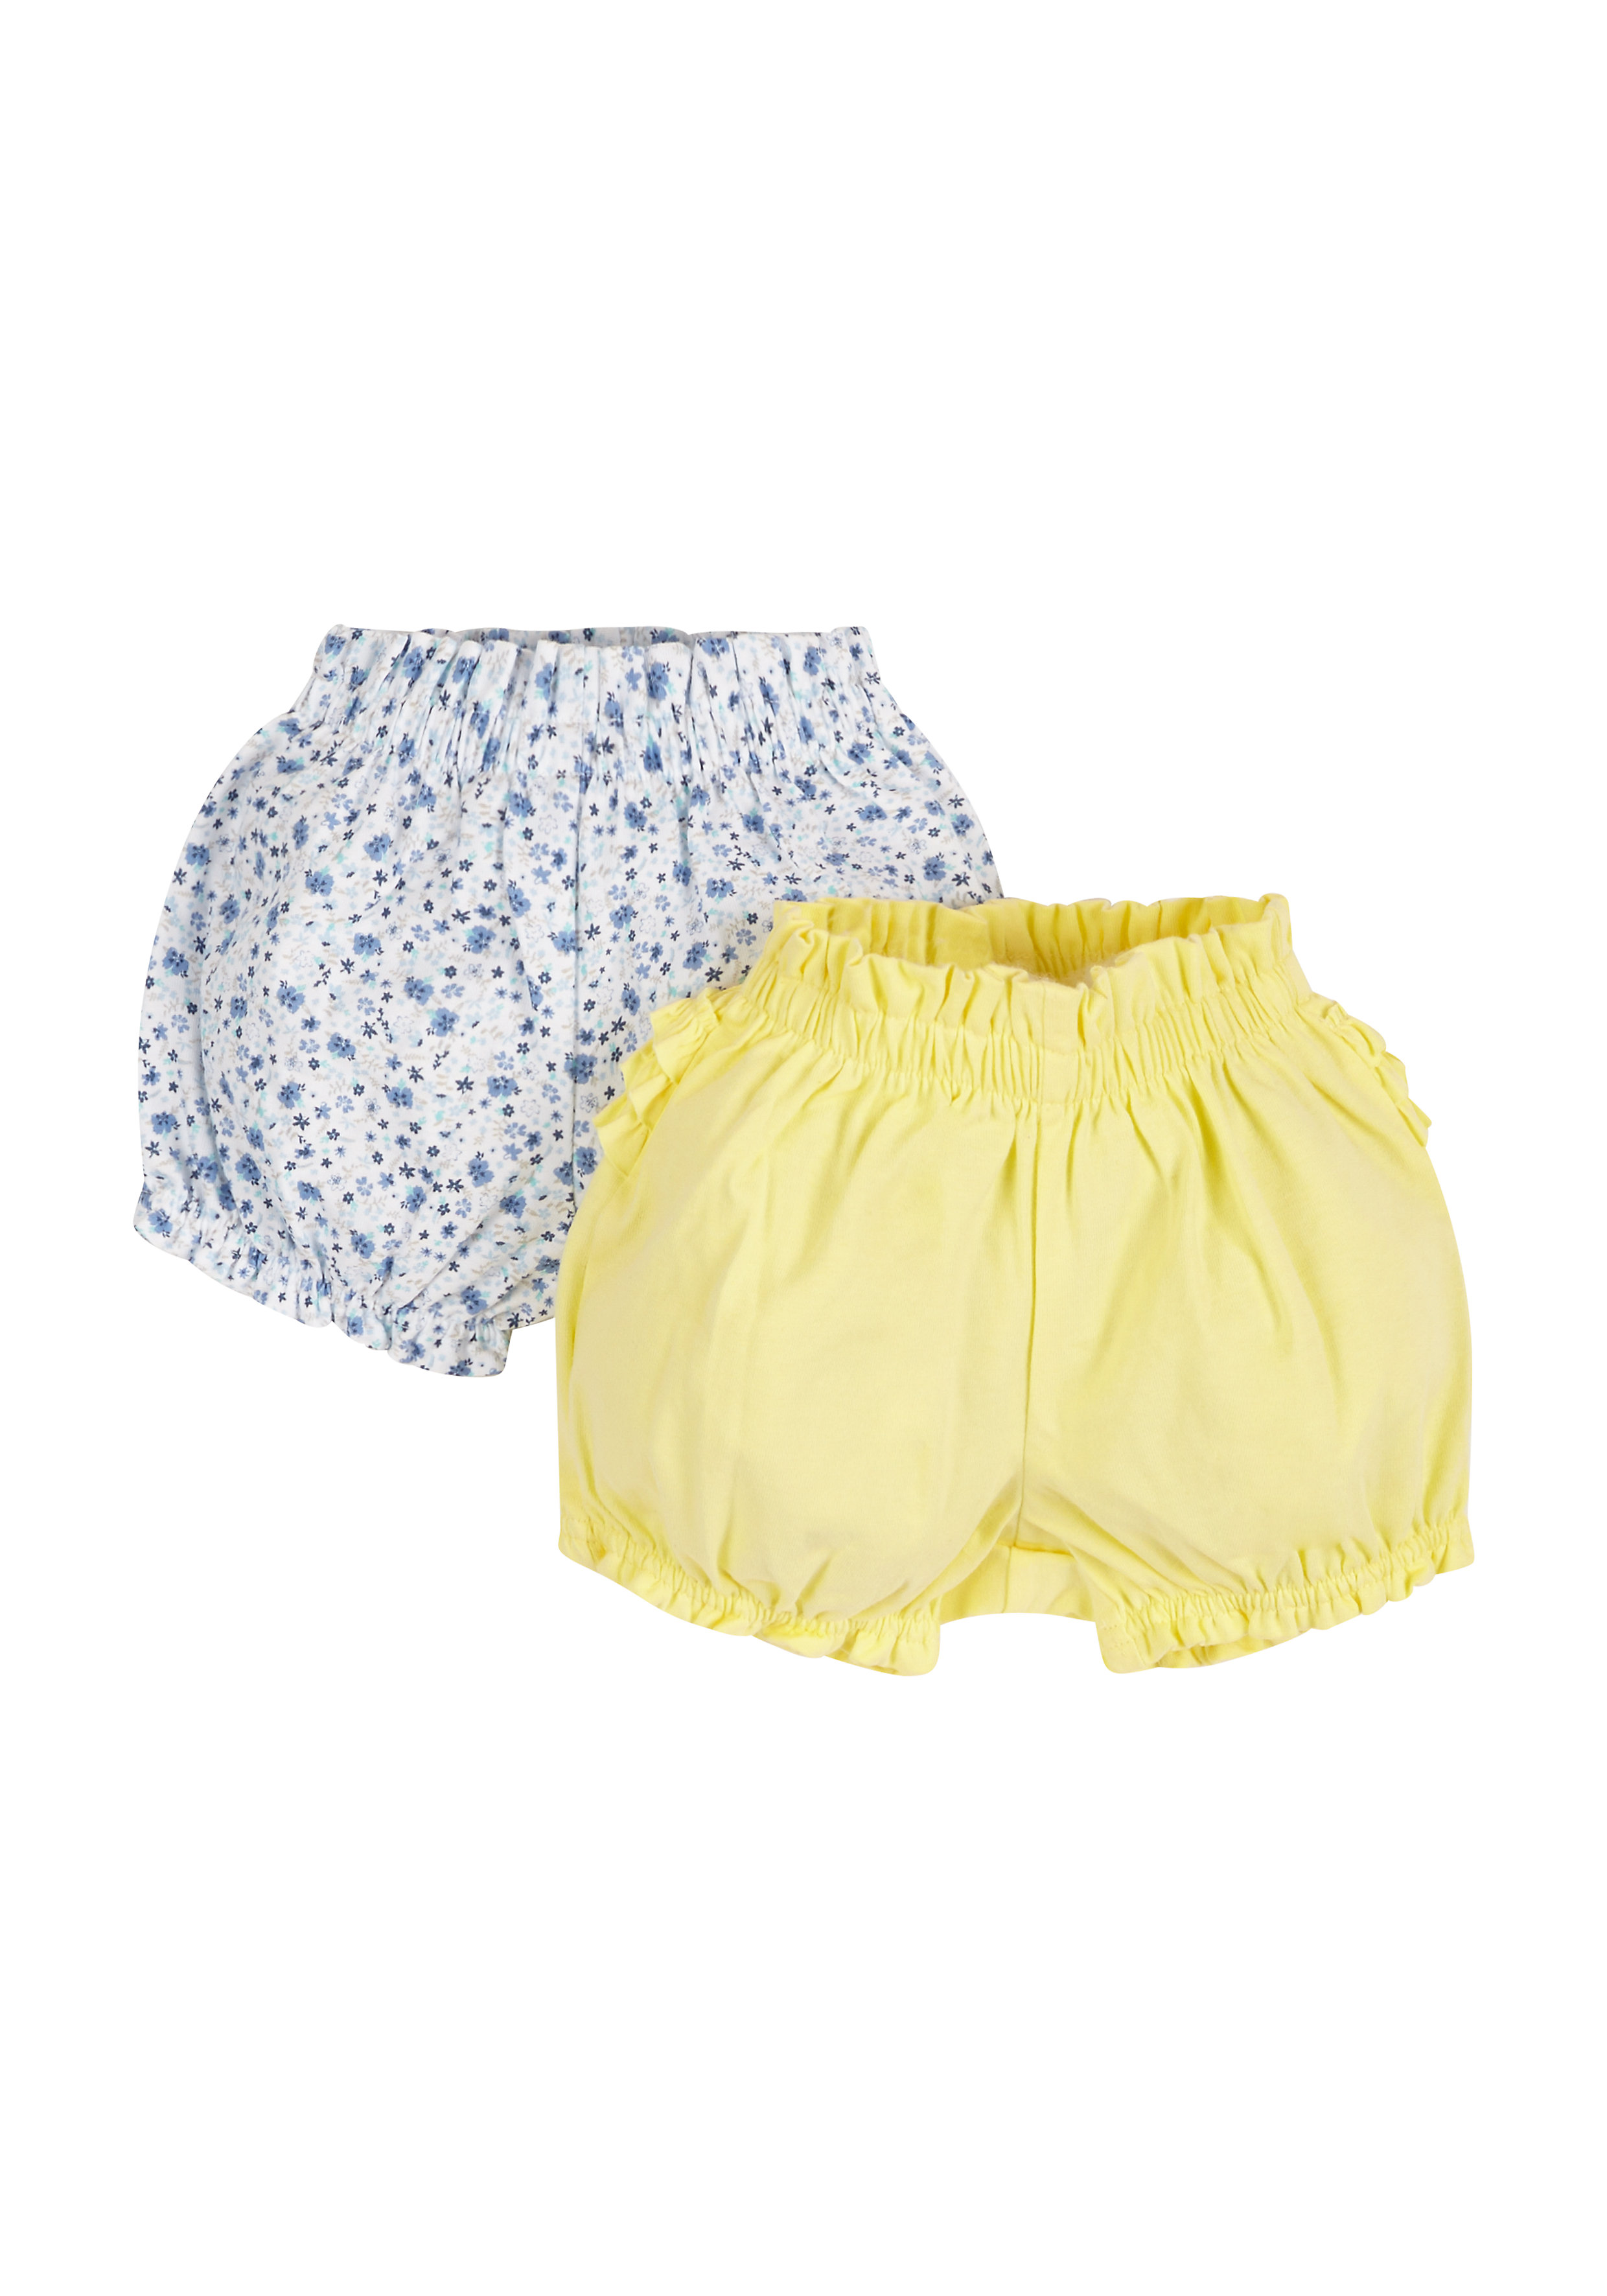 Mothercare | Girls Bloomer Shorts - 2 Pack - Multicolor